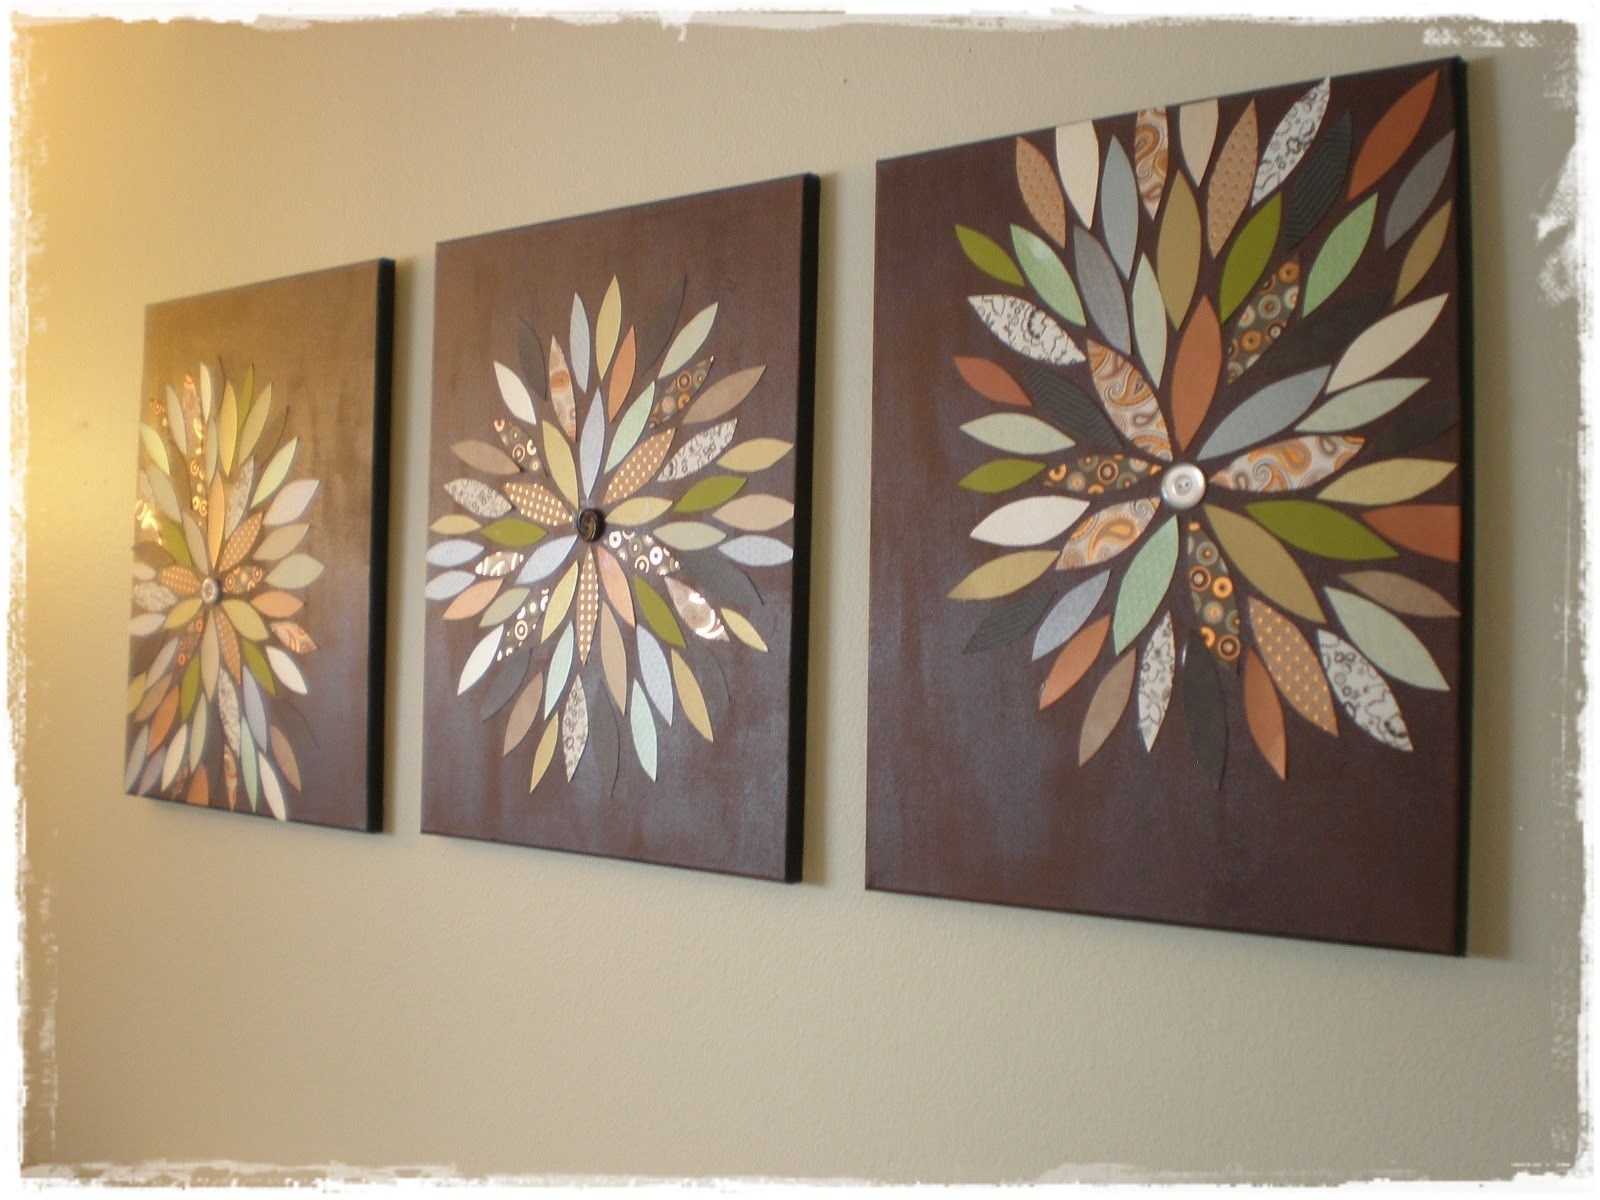 Diy Wall Art Craft Ideas - Home Art Decor | #51696 for Latest Diy Wall Art Projects